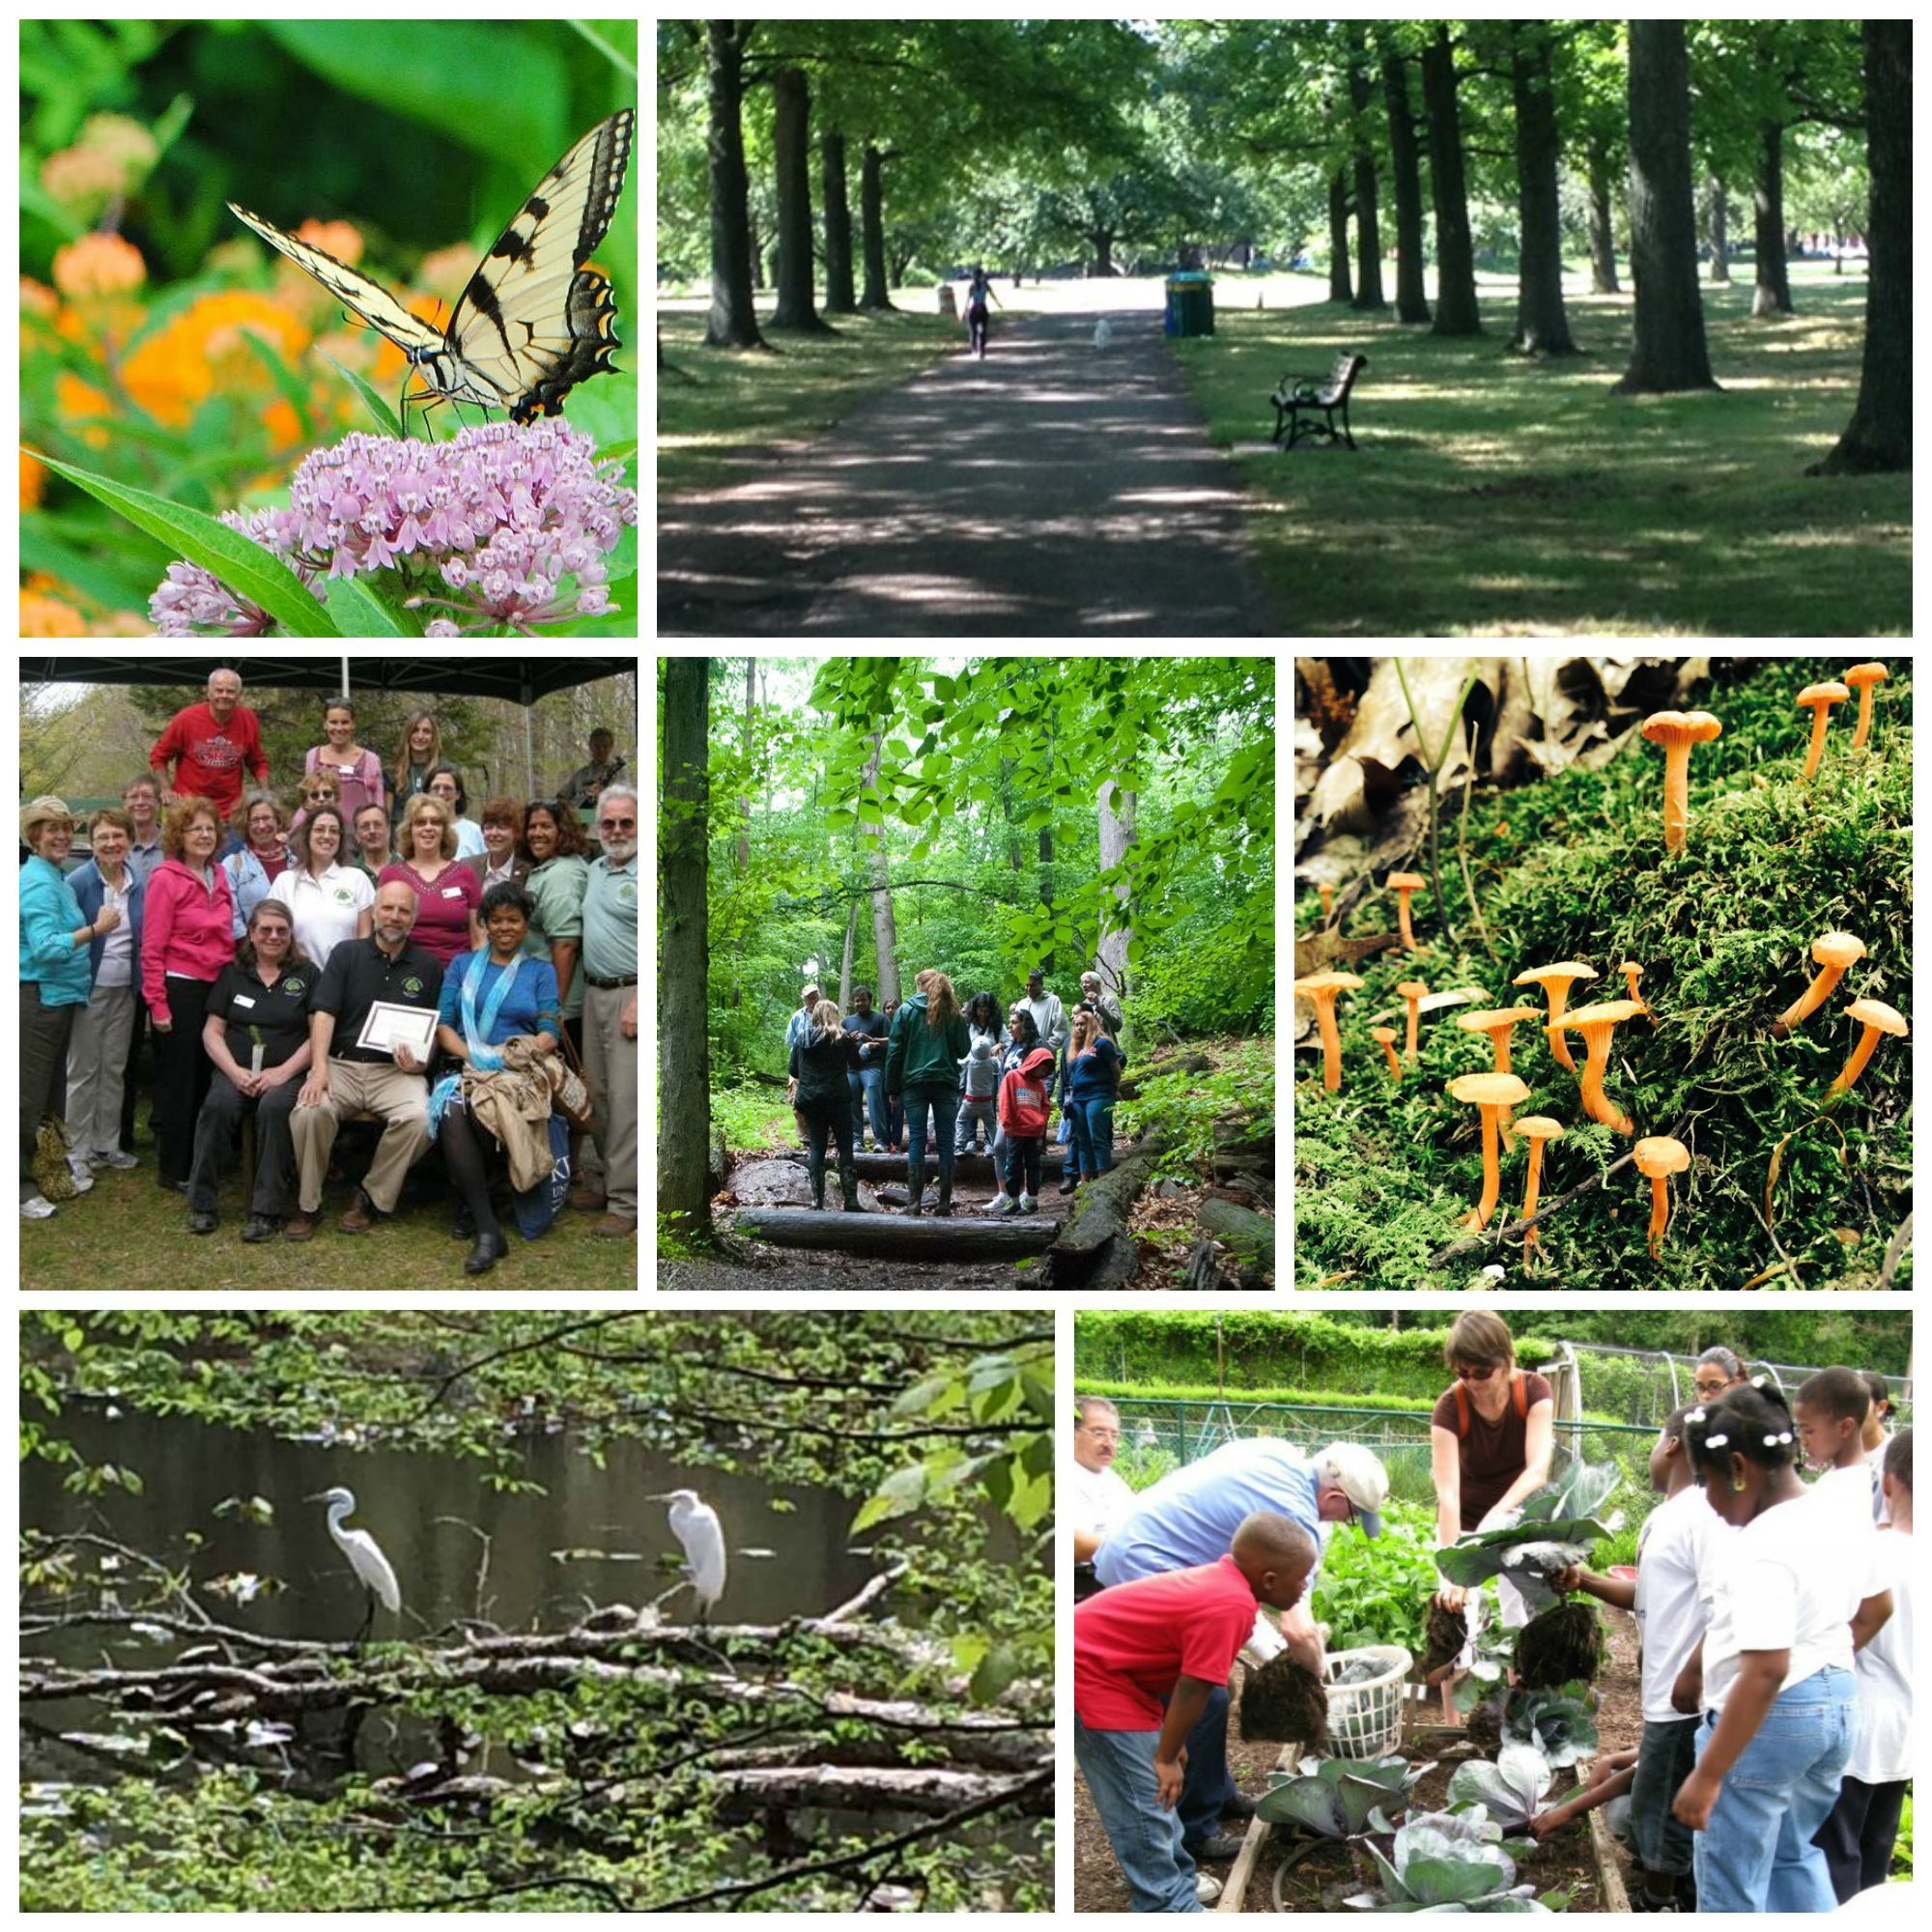 30a9e166381d34b2c091_Go4Life_Senior_Fitness_in_Union_County_Parks__collage_.jpg